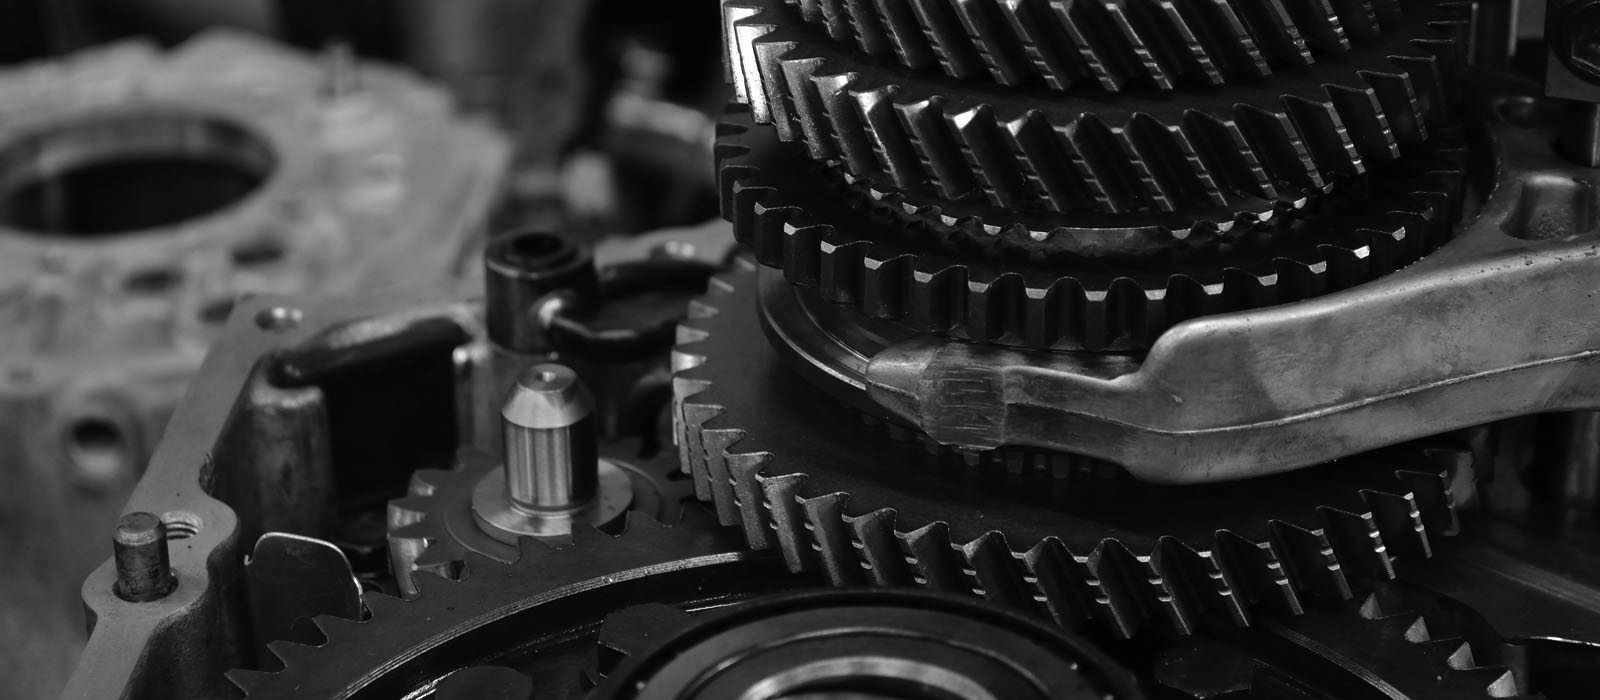 Transmission-repair-transfer-case-and-4x4-repair-differential-service-and-hubs-in-Anchorage-AK